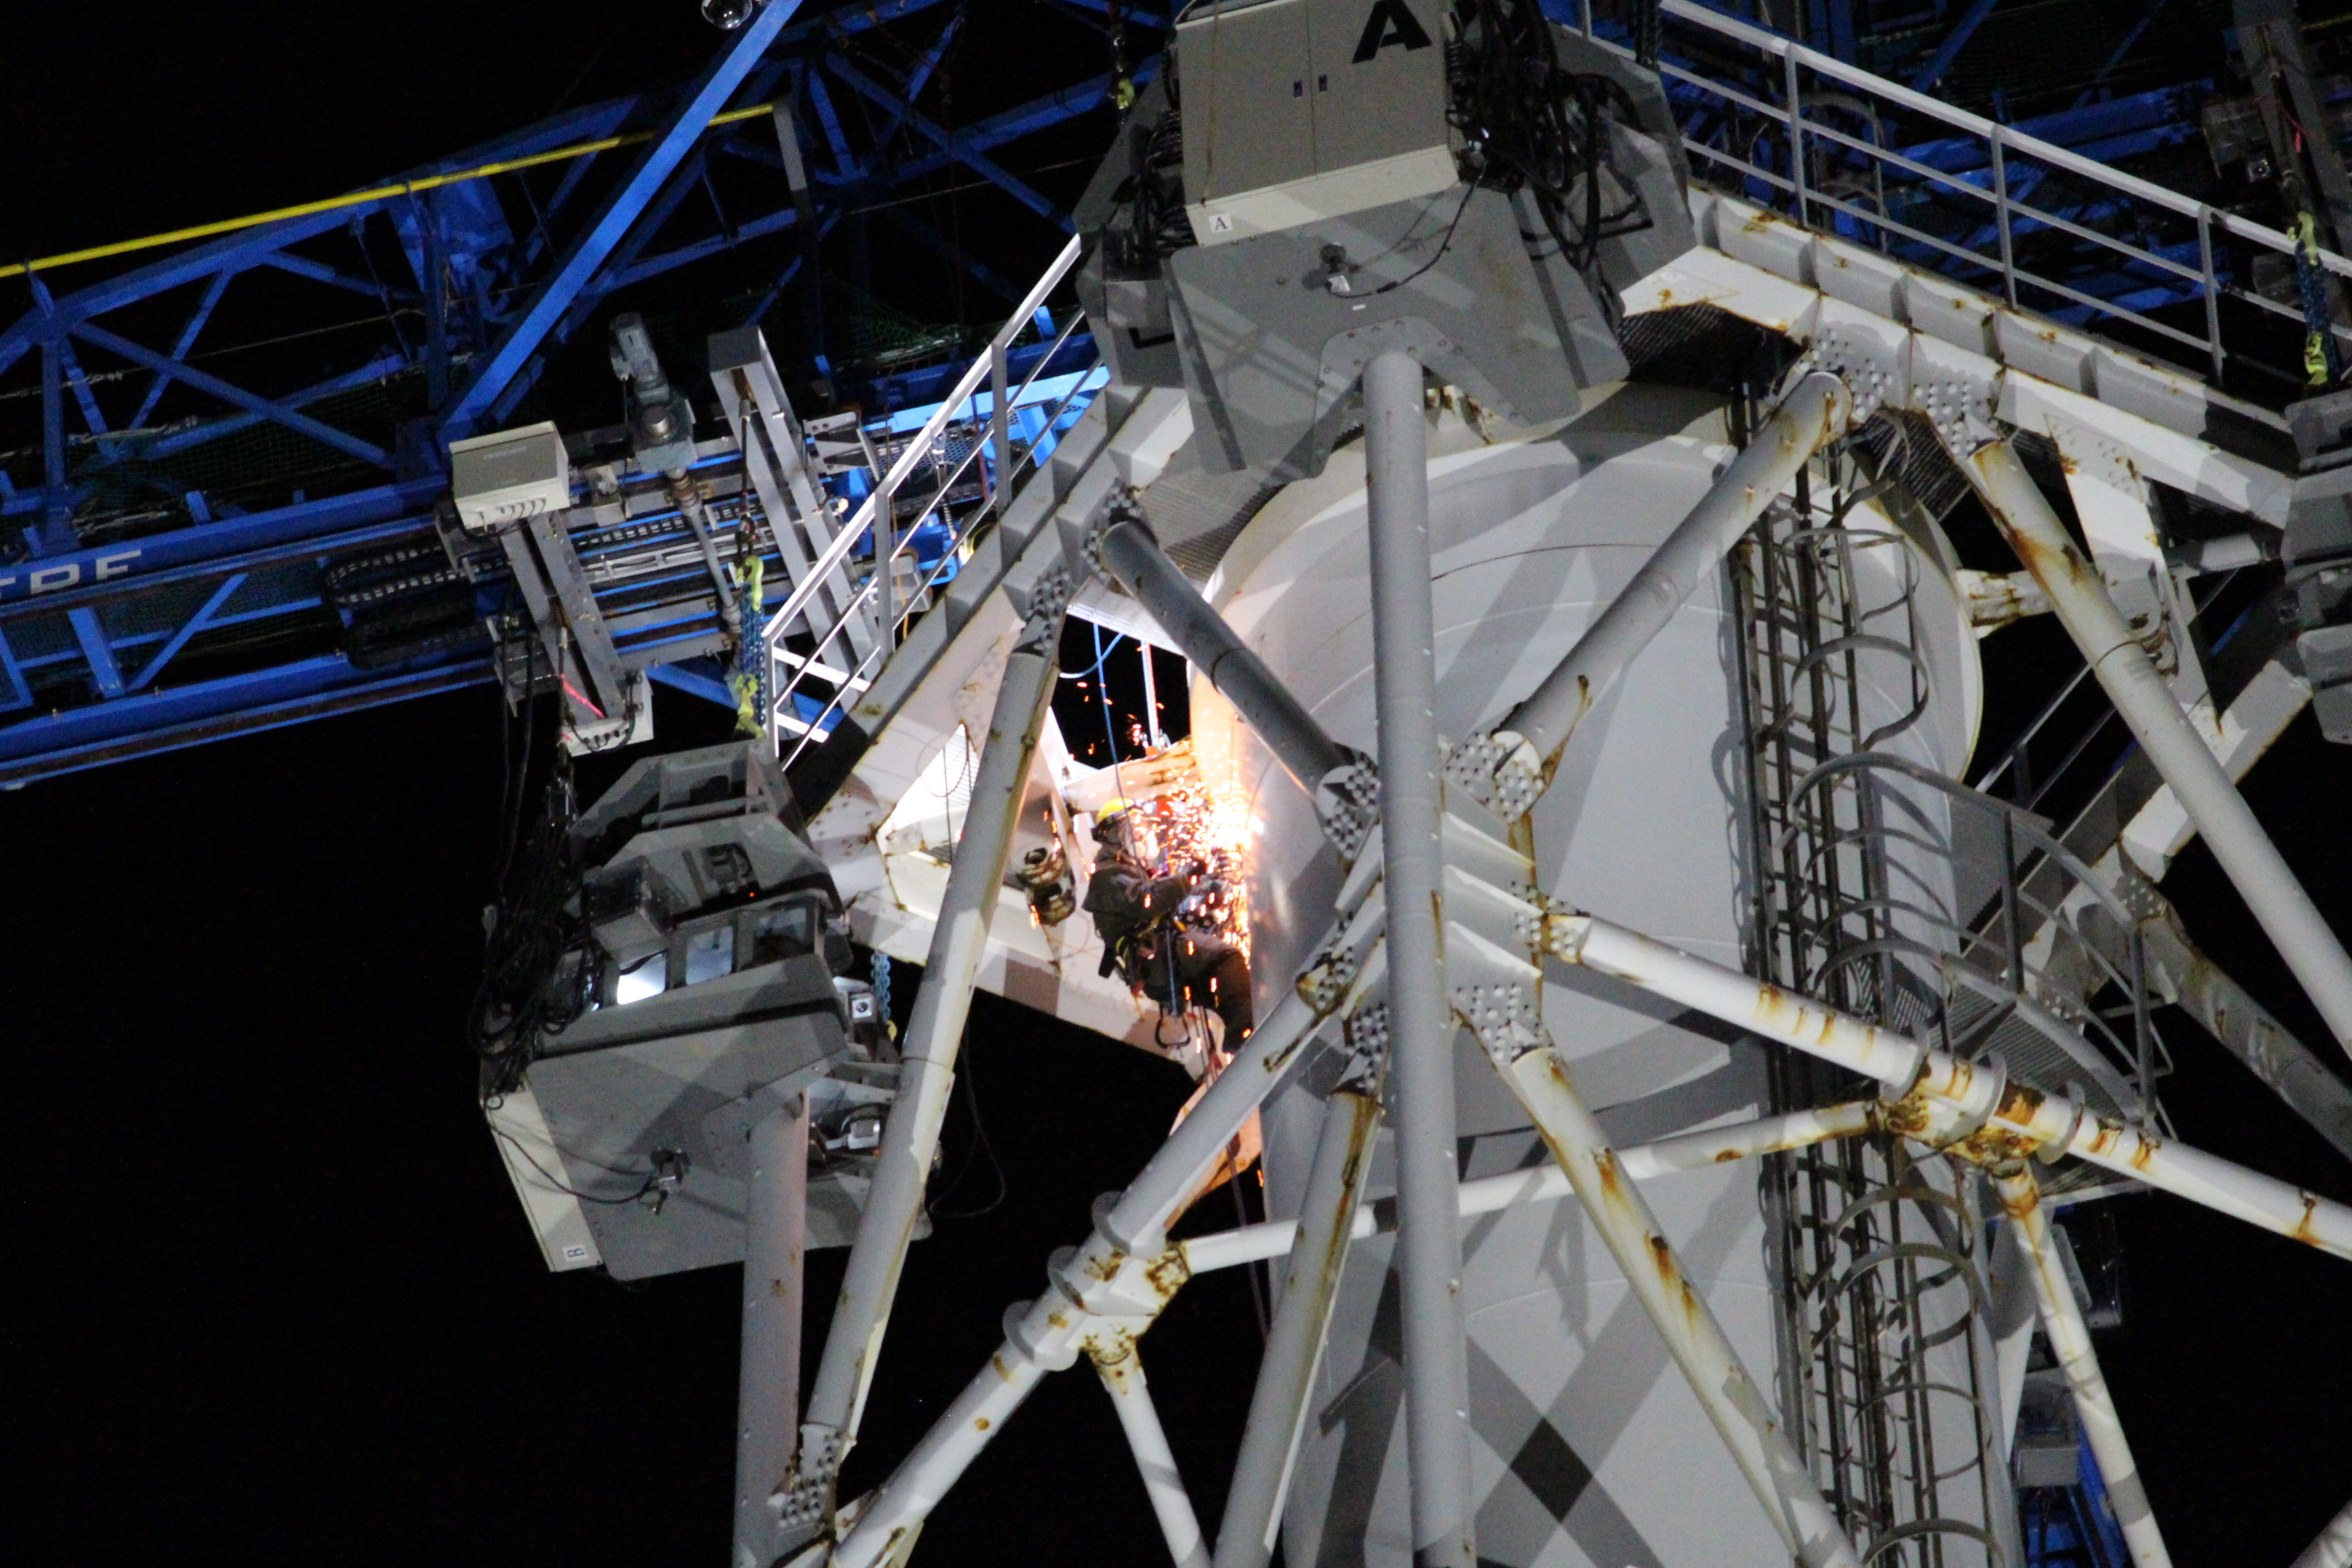 Dismantling of the Unit 1/2 exhaust stack at the Fukushima Daiichi Nuclear Power Station (work on December 3)